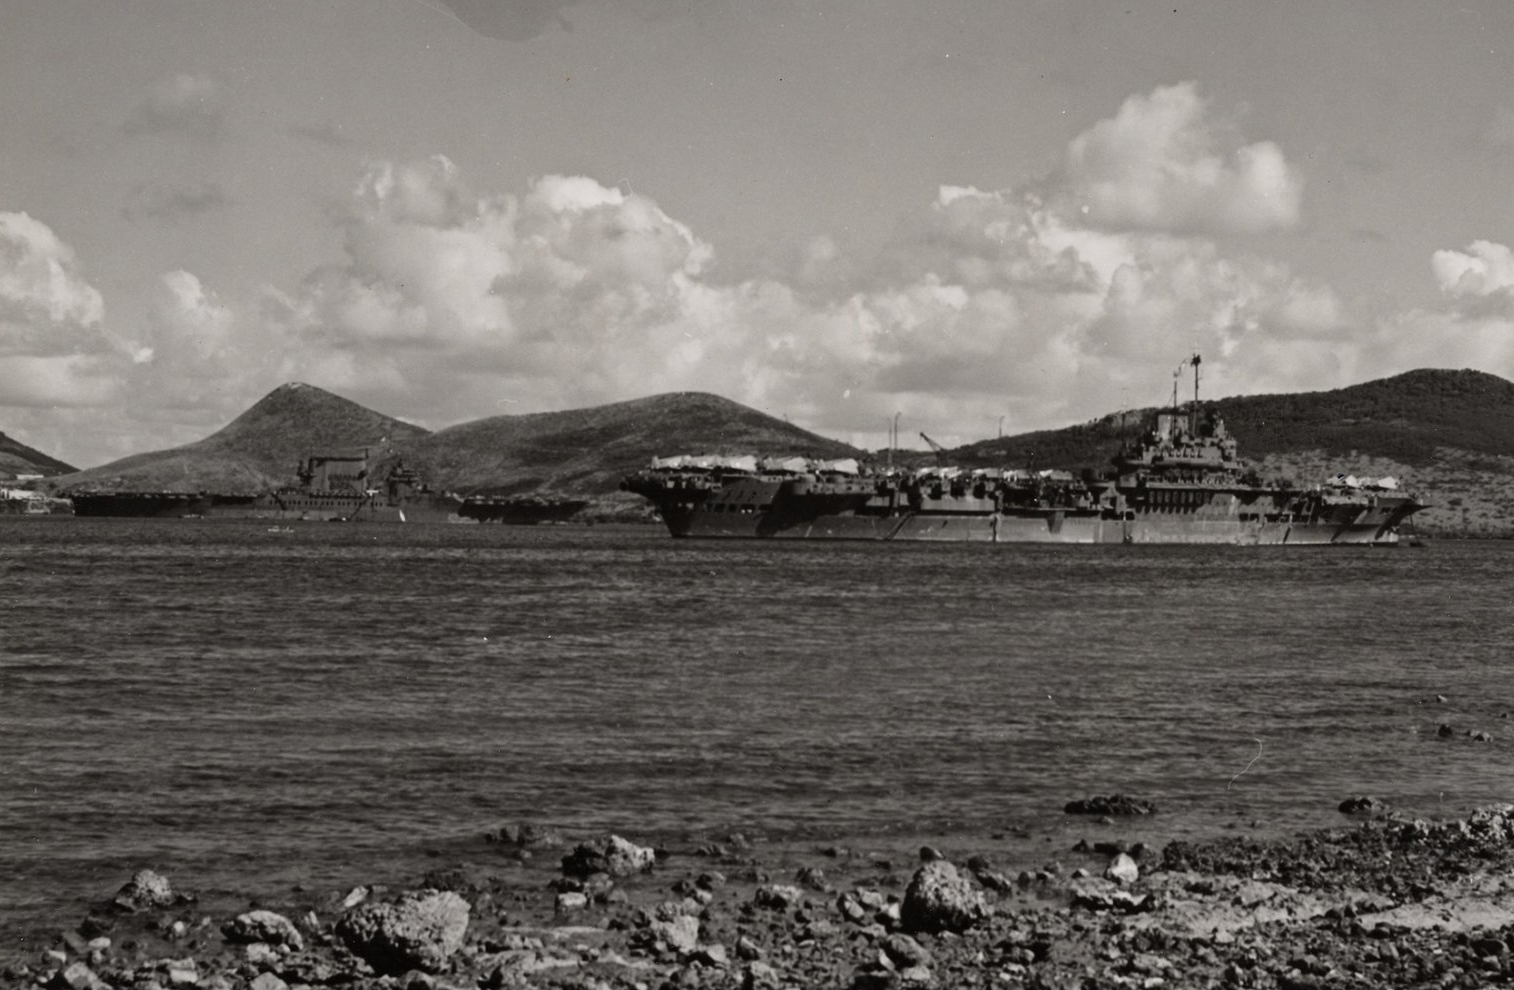 USS SARATOGA and 'USS ROBIN' - HMS VICTORIOUS - at Noumea, New Caledonia.